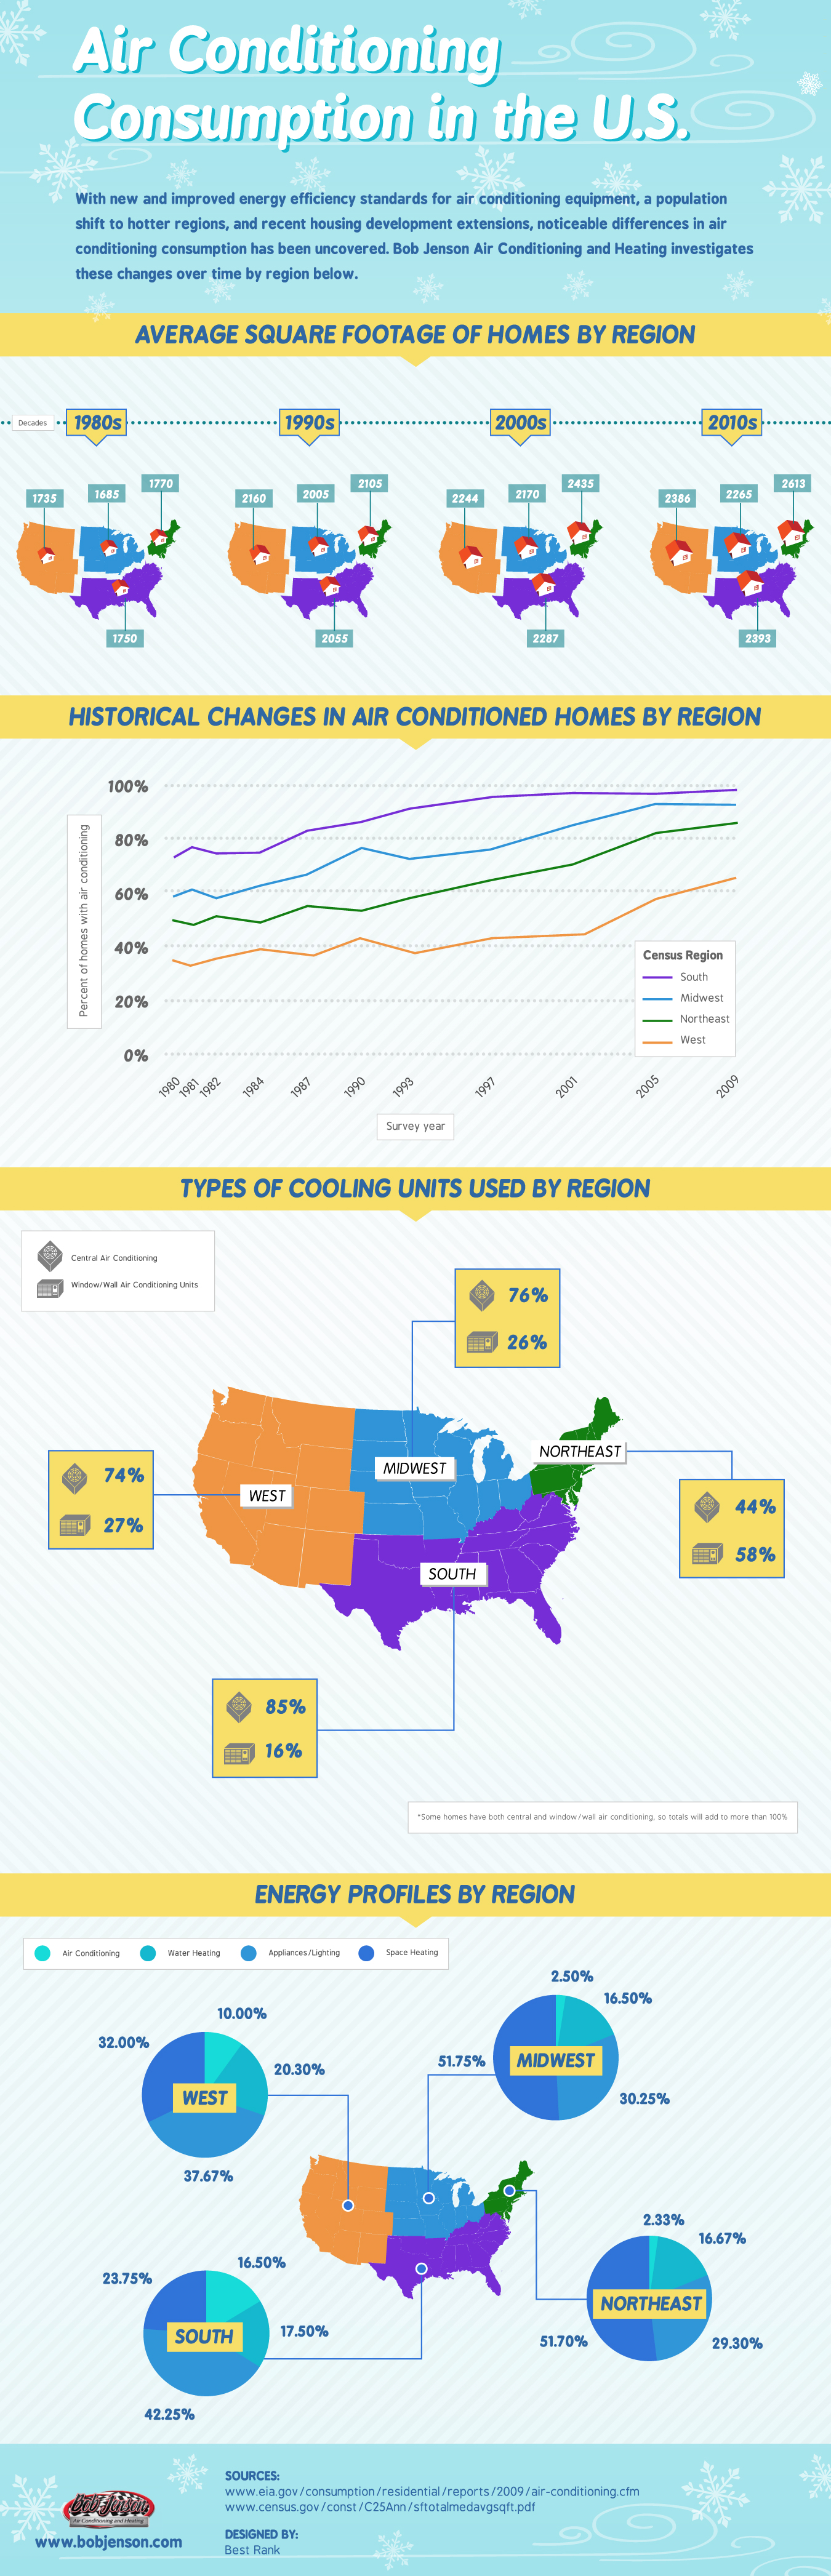 air-conditioning-consumption-in-the-us-infographic_52656ab328cee